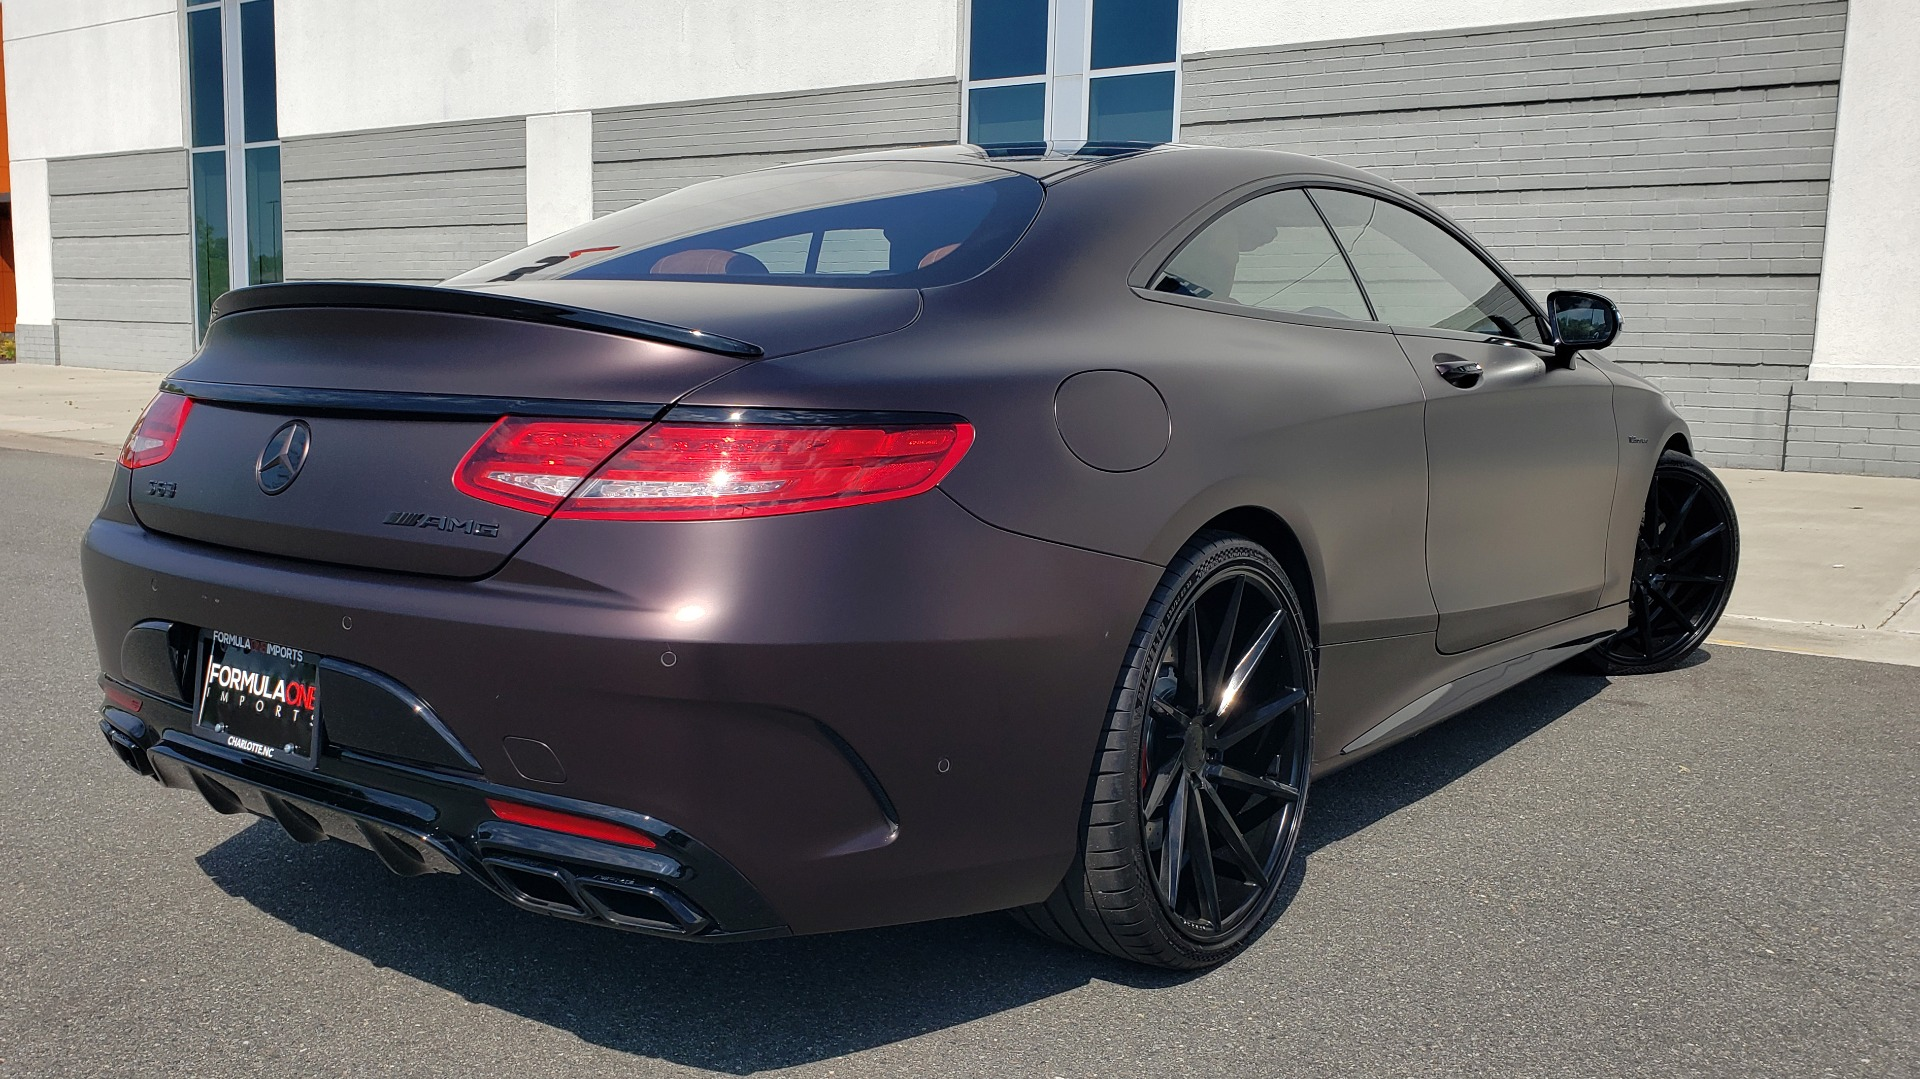 Used 2017 Mercedes-Benz S-CLASS AMG S 63 / NAV / SUNROOF / CUSTOM WRAP / BLACK VOSSEN WHEELS for sale Sold at Formula Imports in Charlotte NC 28227 2